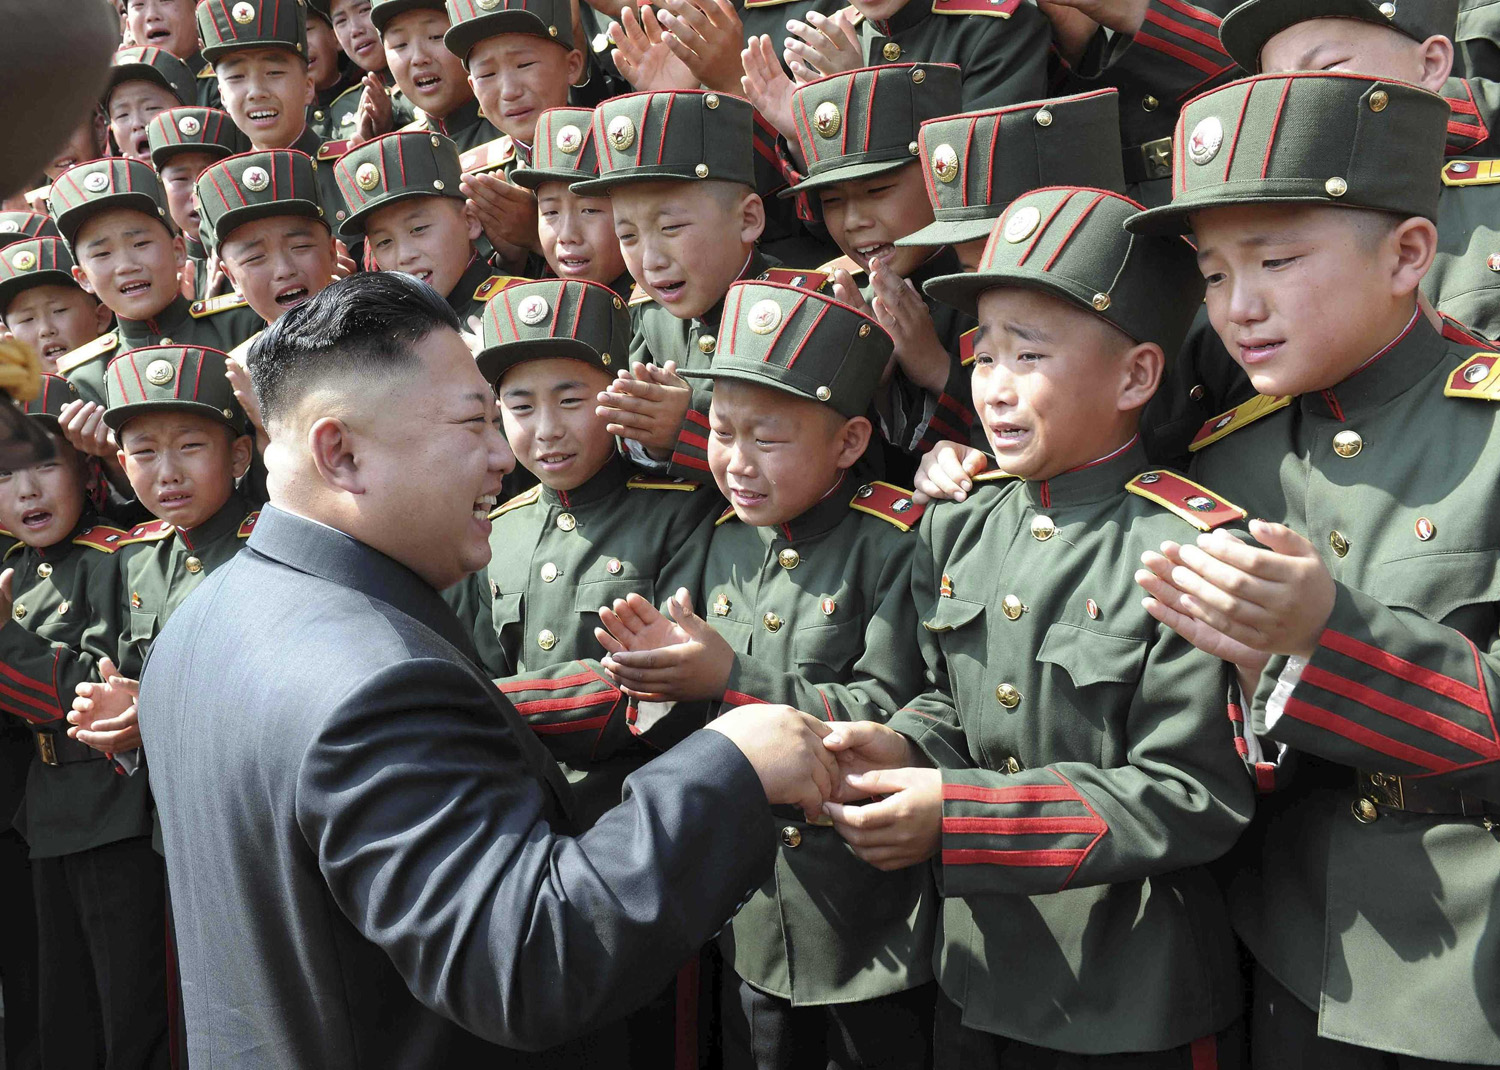 North Korean leader Kim Jong Un visits Mangyongdae Revolutionary School on the occasion of the 68th anniversary of the founding of the Korean Children's Union (KCU) in this undated photo released by North Korea's Korean Central News Agency (KCNA) in Pyongyang June 7, 2014.